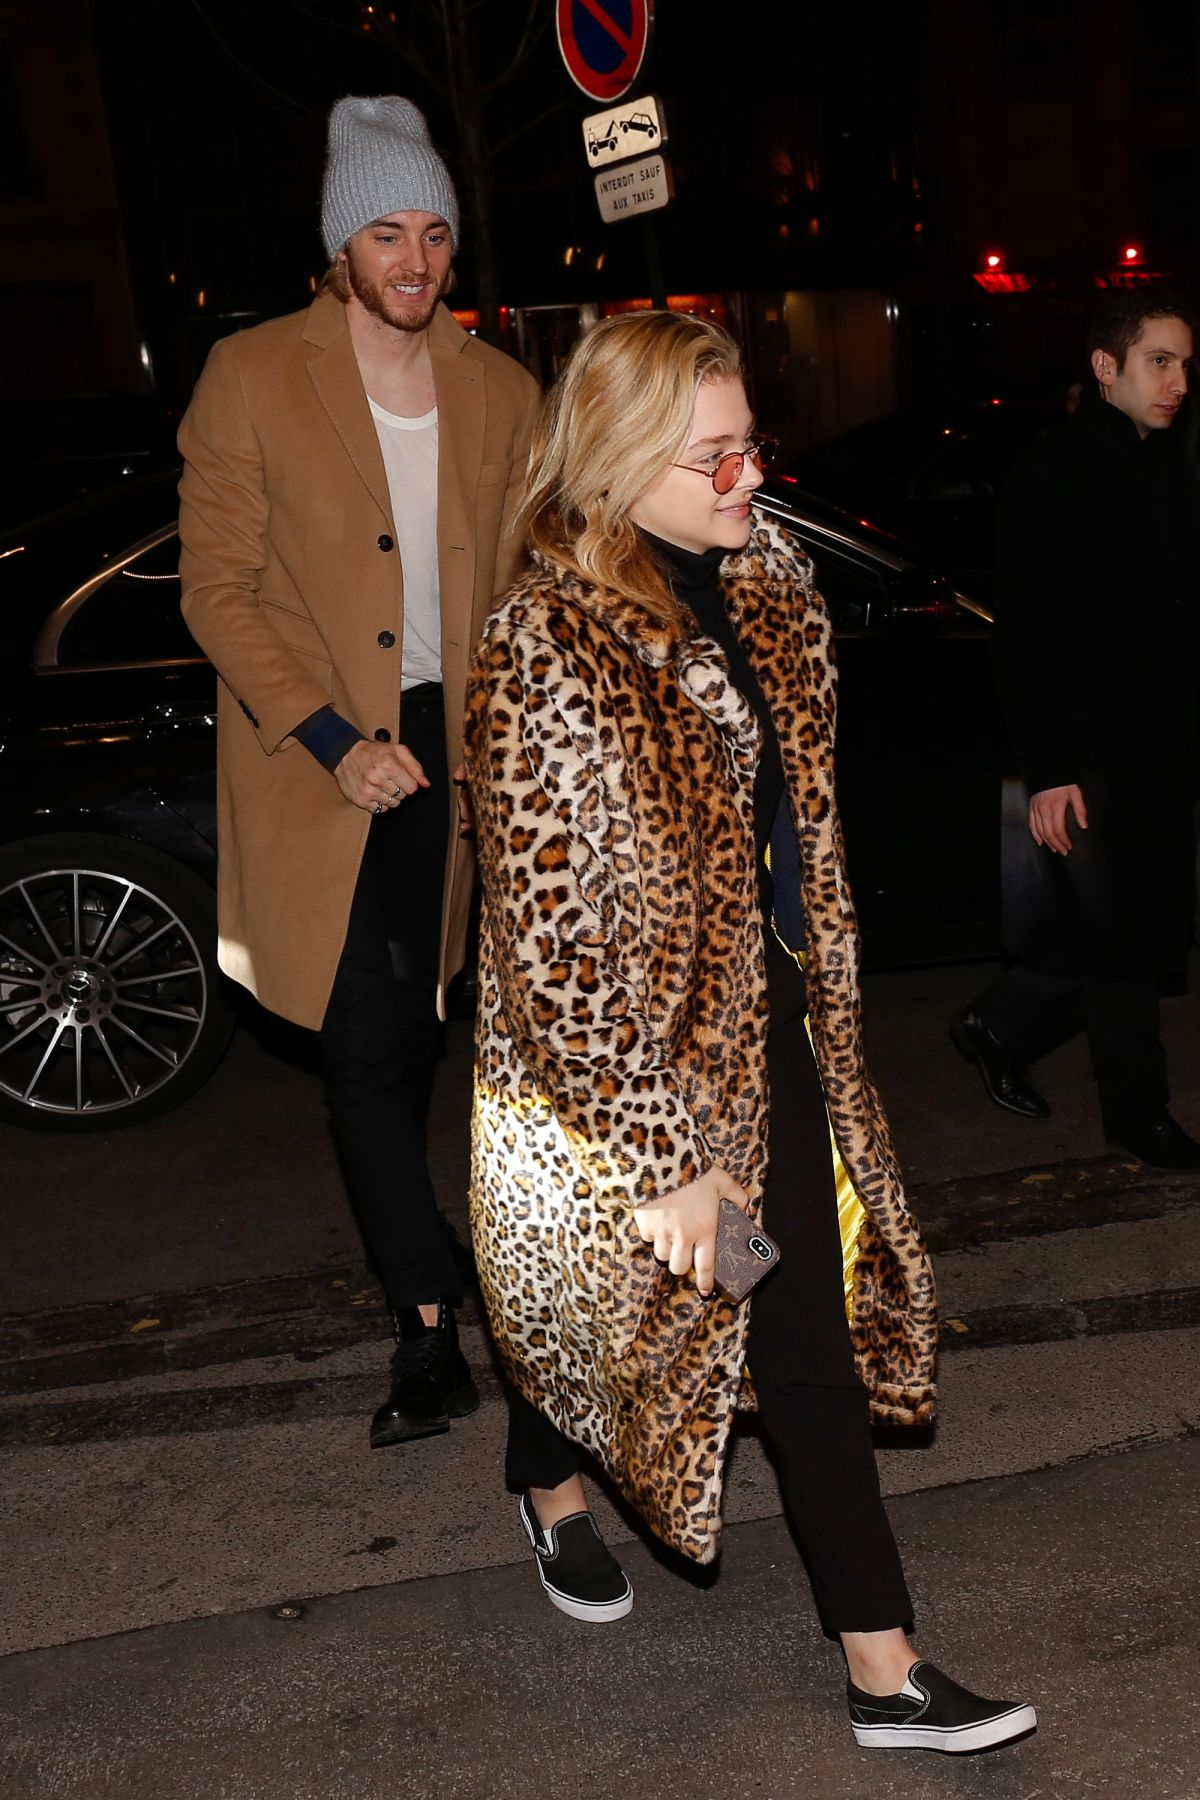 a0beb76db95 Chloe Grace Moretz Arrives at her hotel with her brother Trevor Duke in  Paris